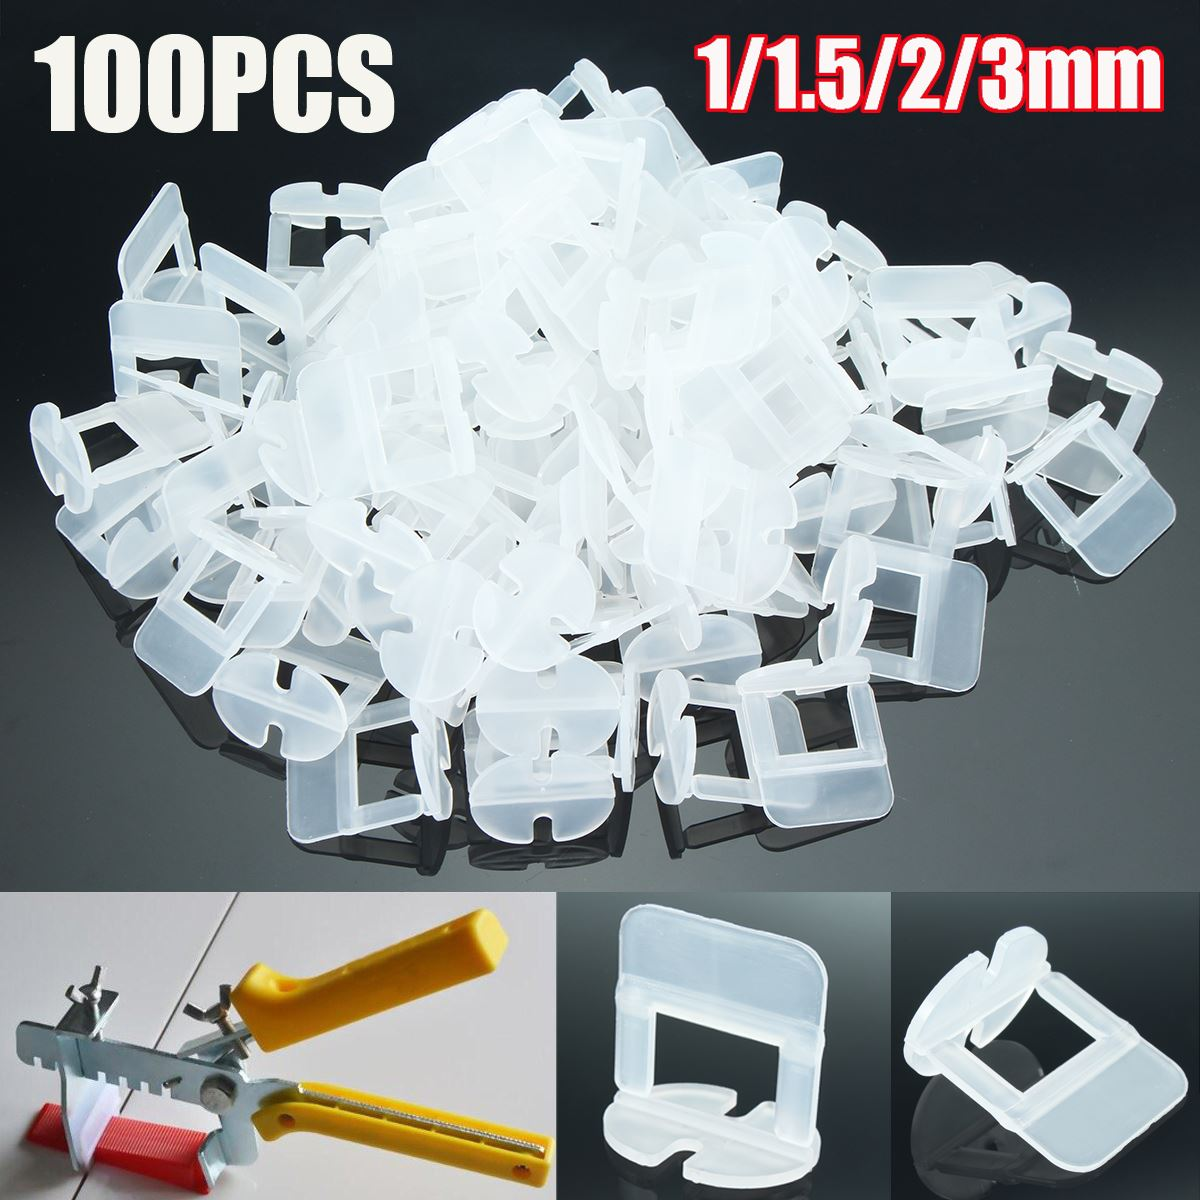 1set100pcs 11523mm Tile Levelling Spacers Clips Flooring Tiling